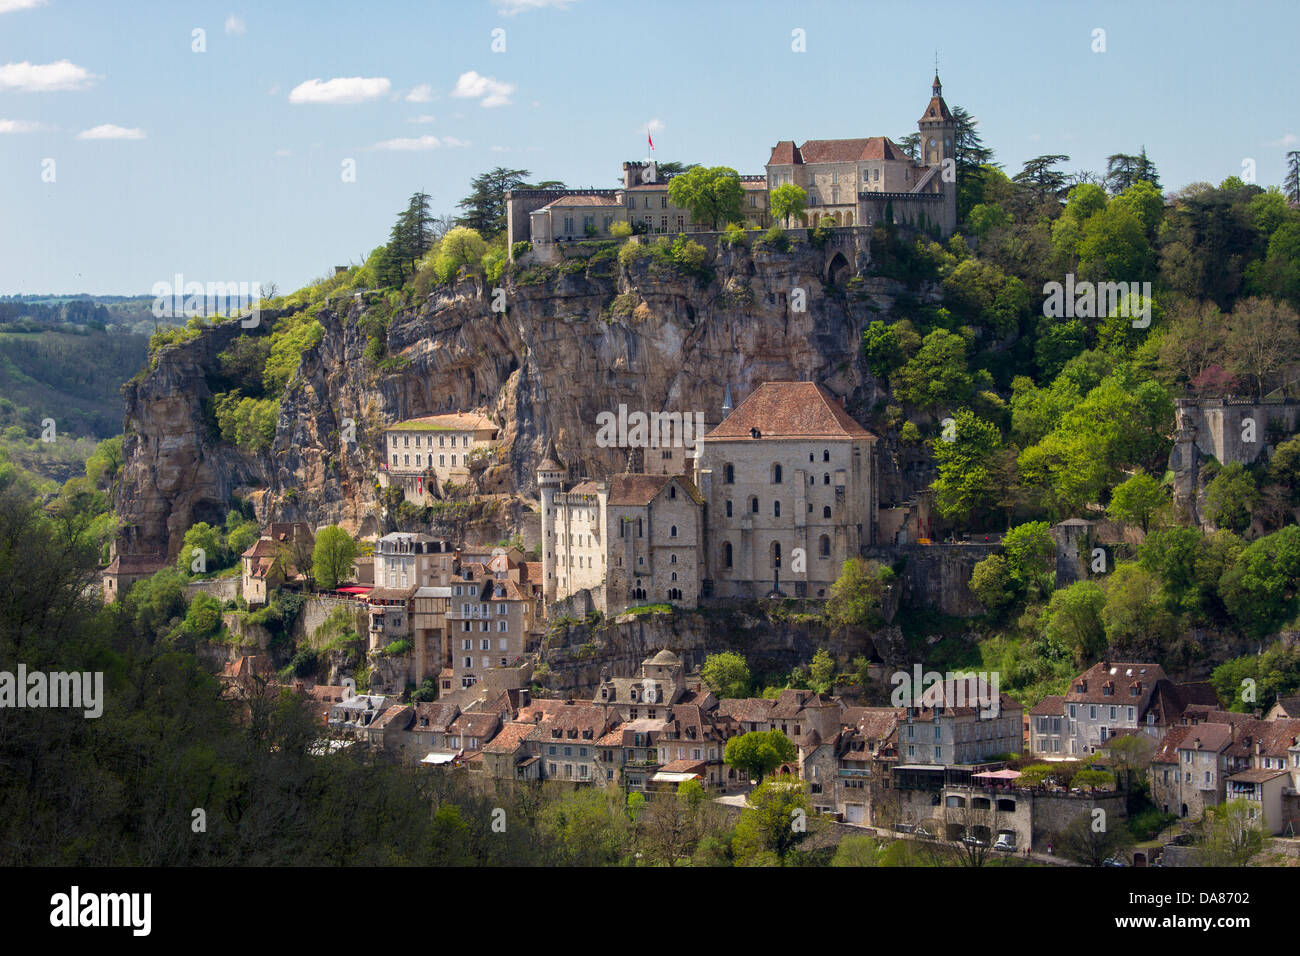 Dramatic view of Rocamadour sanctuaries built into the cliff, tourist attraction in Midi-Pyrenees region of France - Stock Image